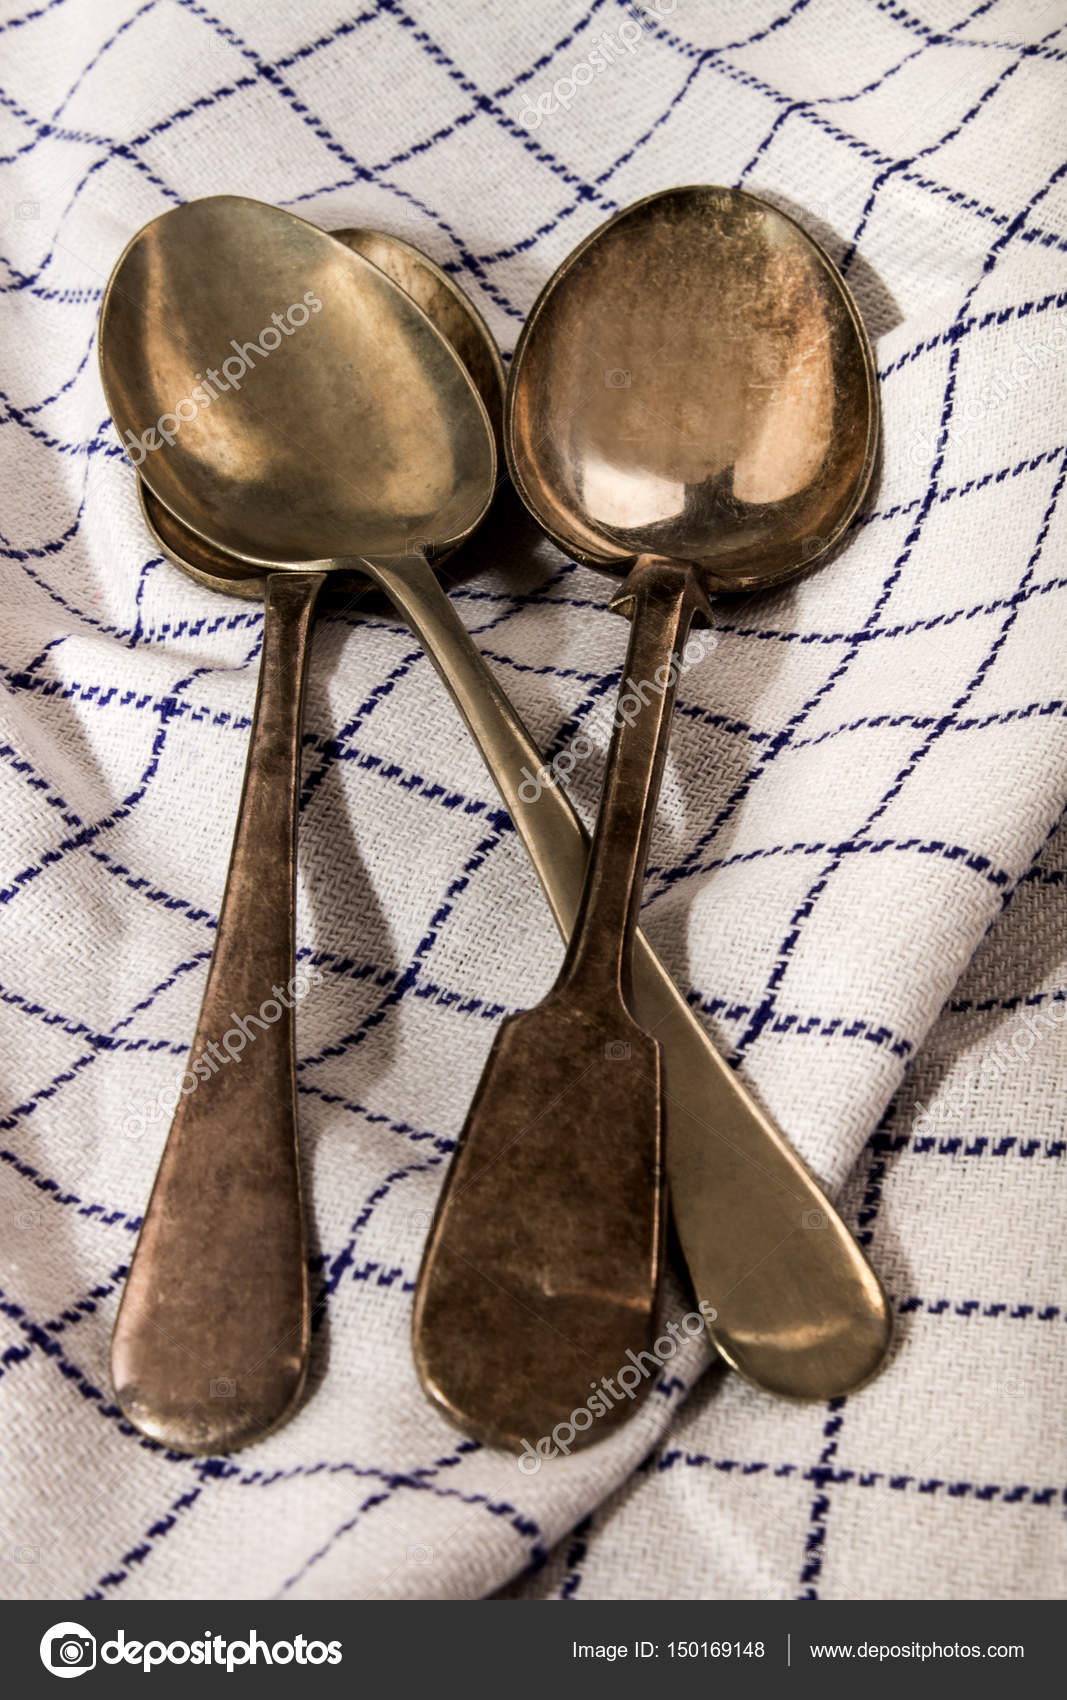 Three Old Silver Spoons On A Blue And White Kitchen Towel U2014 Stock Photo